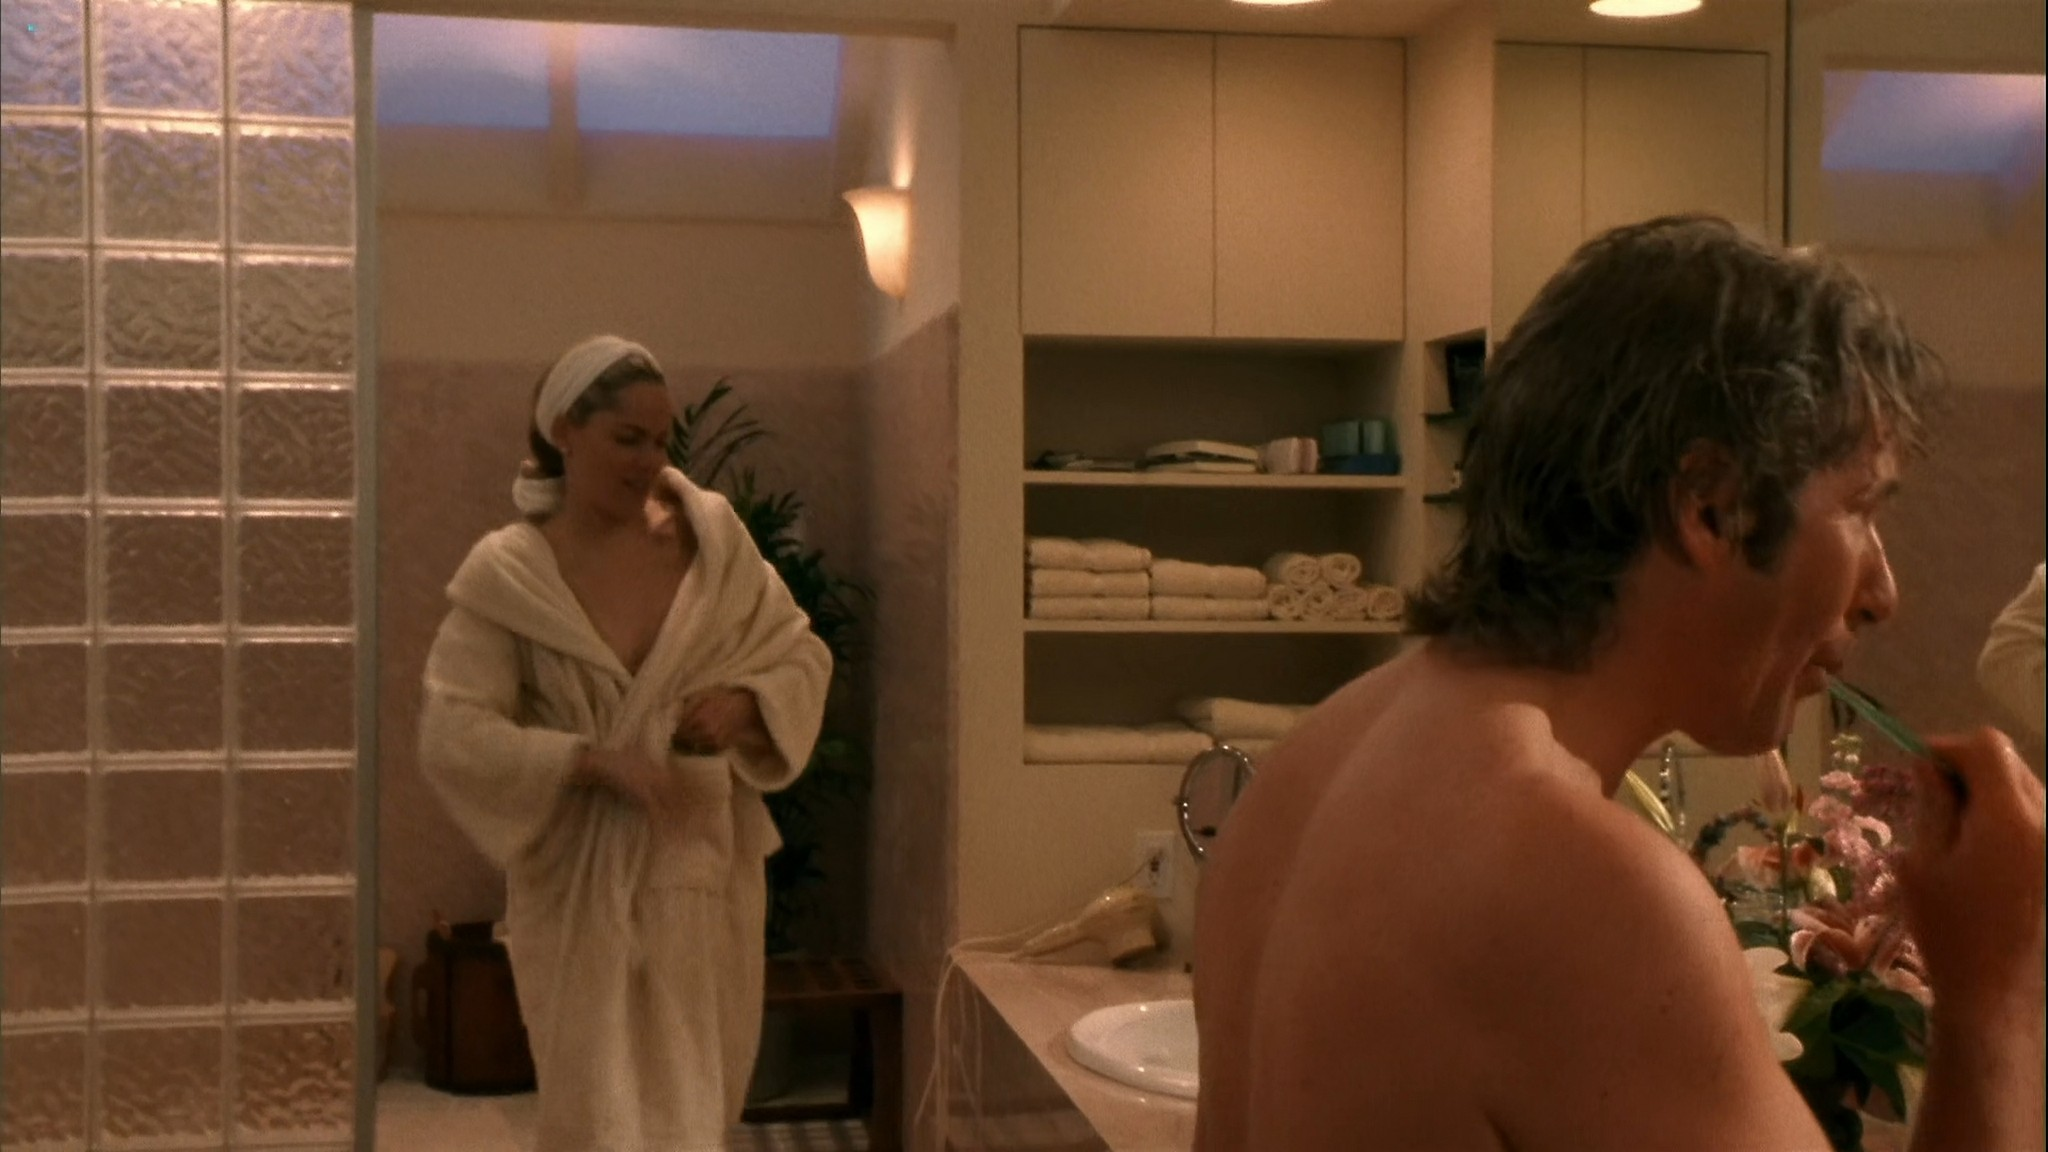 Lolita Davidovich nude topless and Sharon Stone nude in the shower - Intersection (1994) HD 1080p WEB (7)